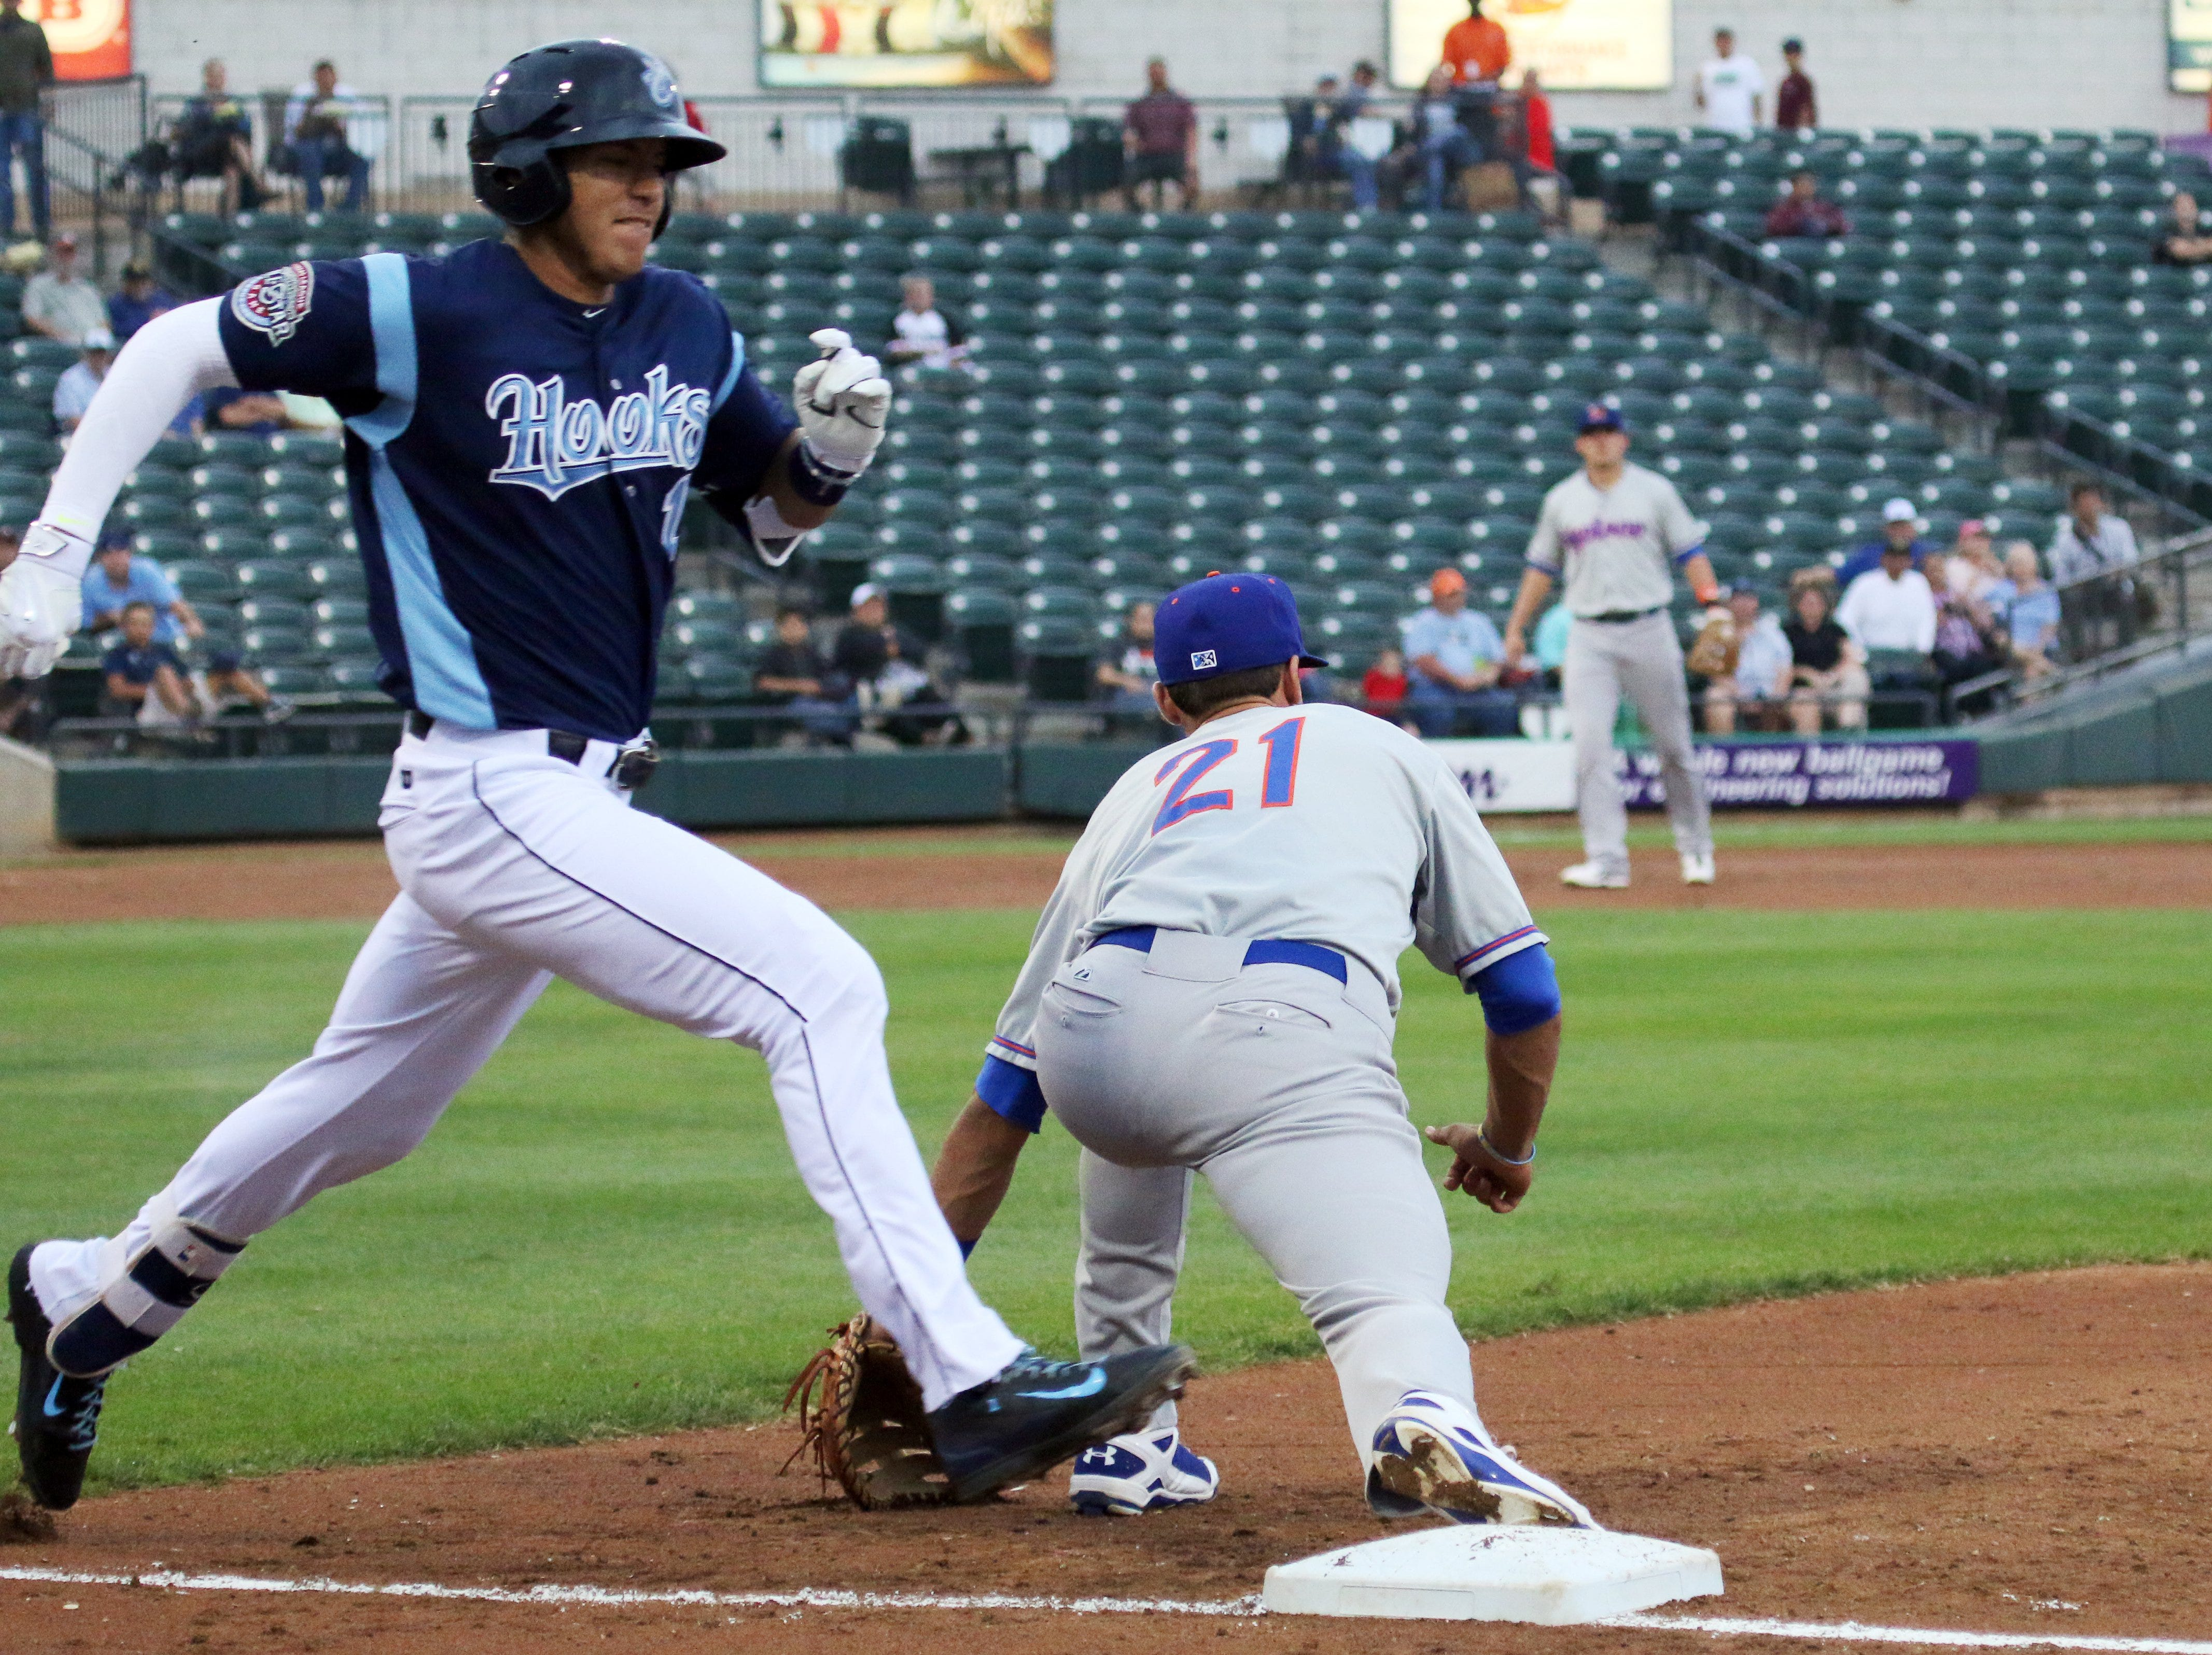 Erick Sifuentes/Special to The Caller-TimesCorpus Christi Hooks' Carlos Correa beats out a throw to first against the Midland Rockhounds at Whataburger Field on Tuesday, May 5, 2015 .